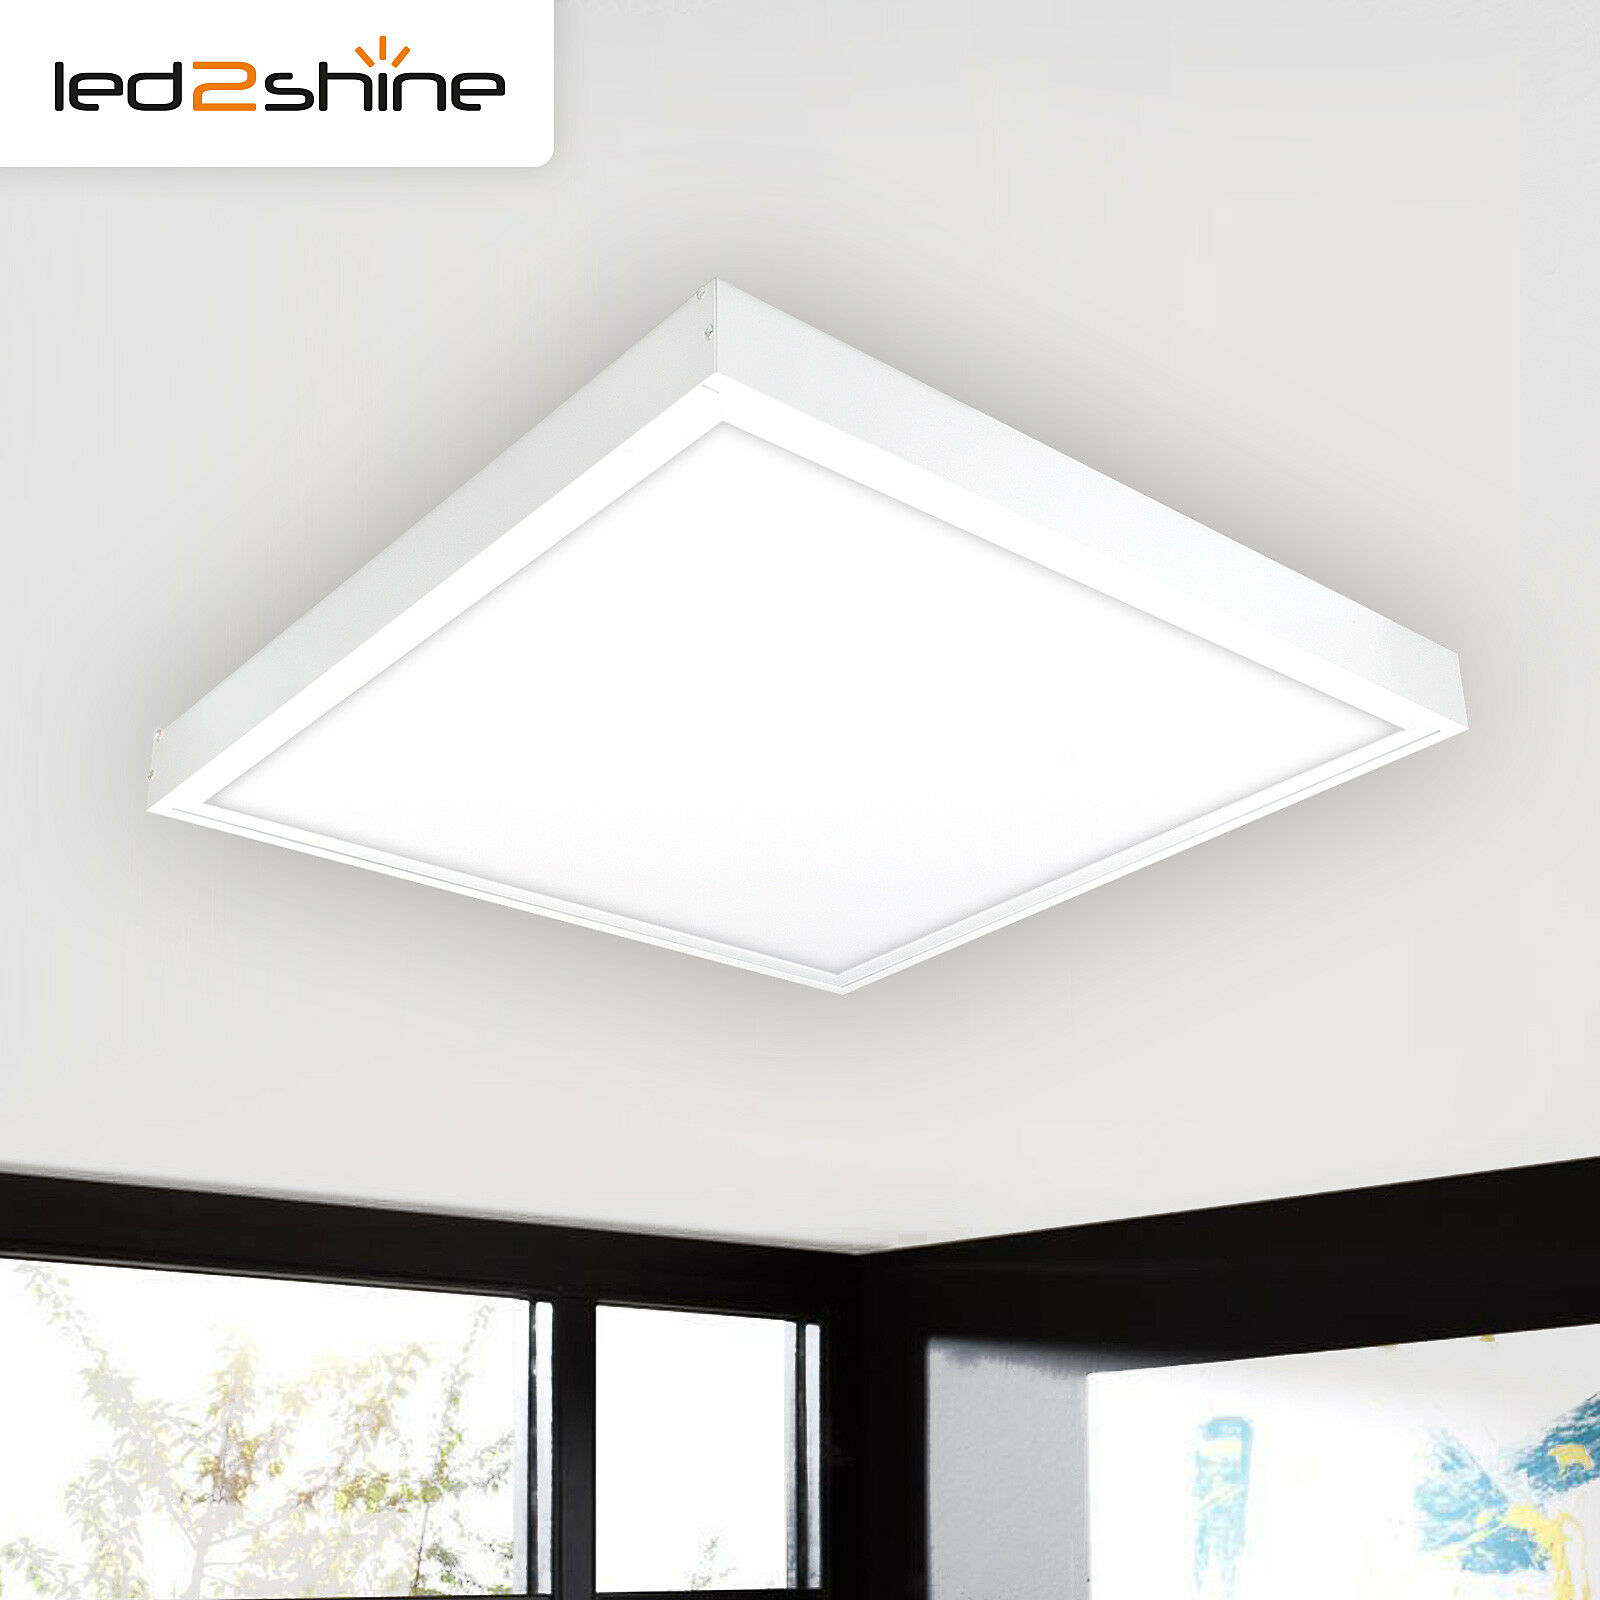 Panel LED lámpara de techo 60x60 cuadrada 40w LED Panel neutral blancoo 4000k salón